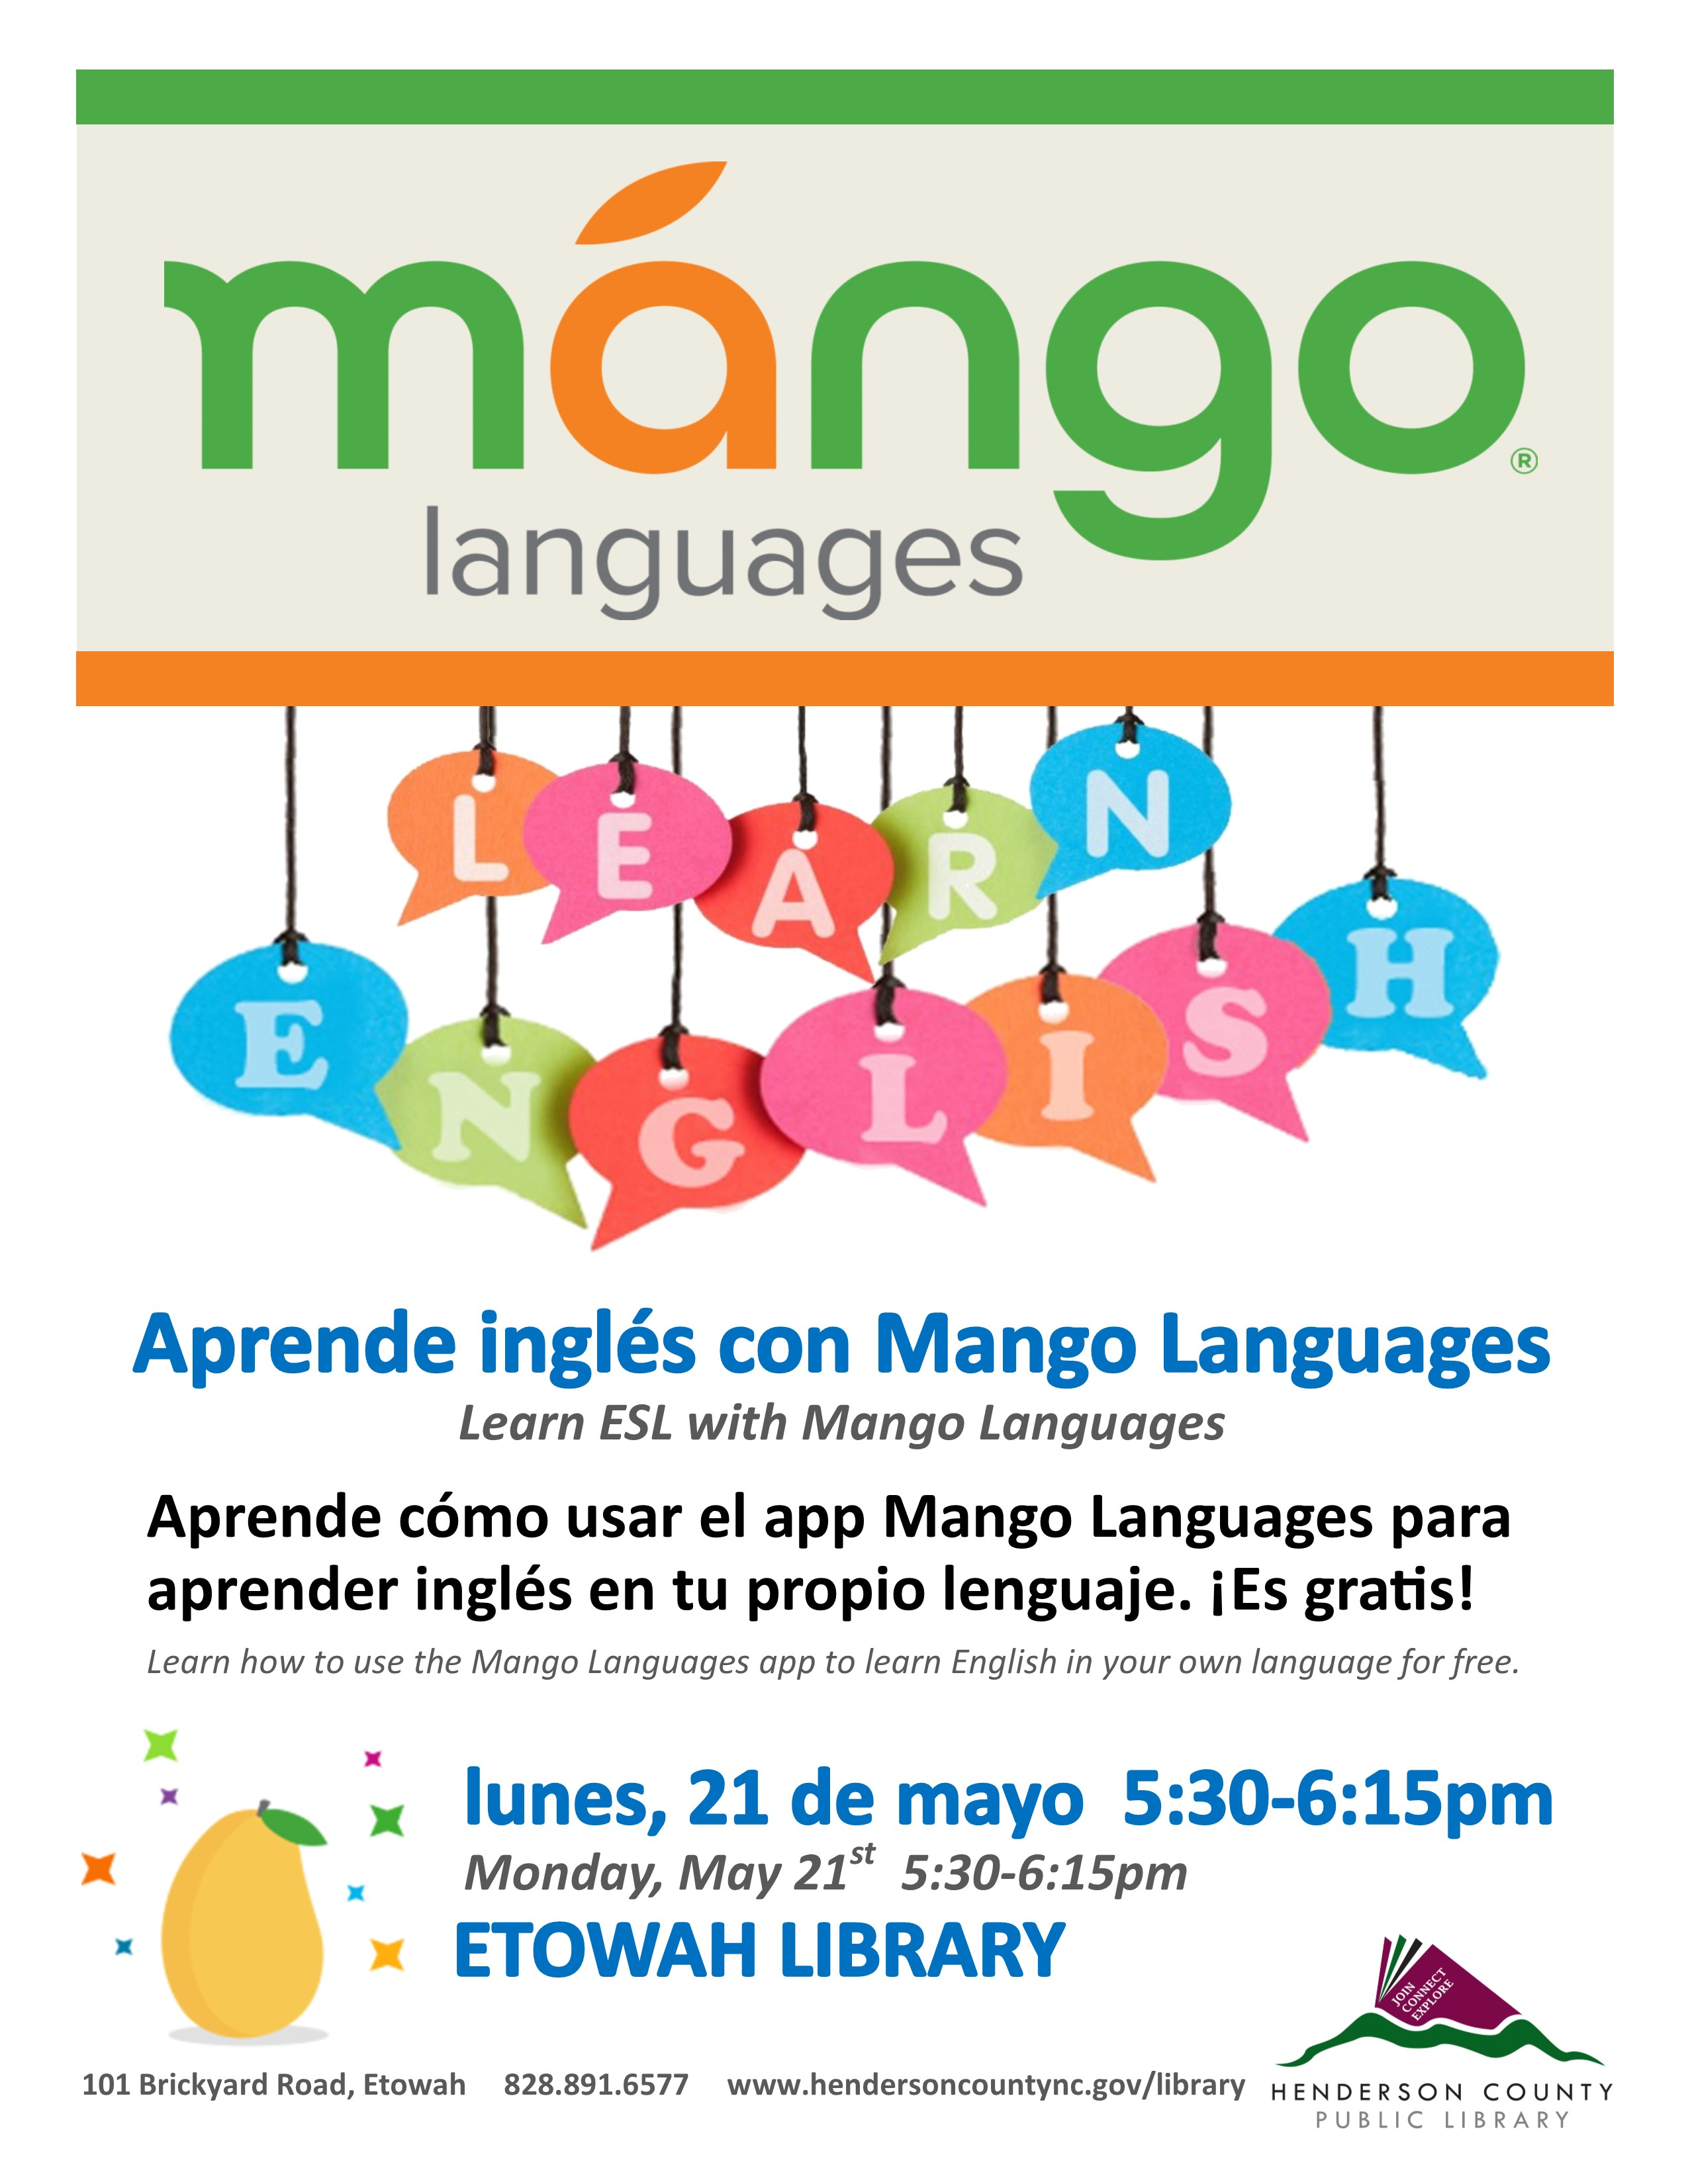 Learn ESL with Mango Languages